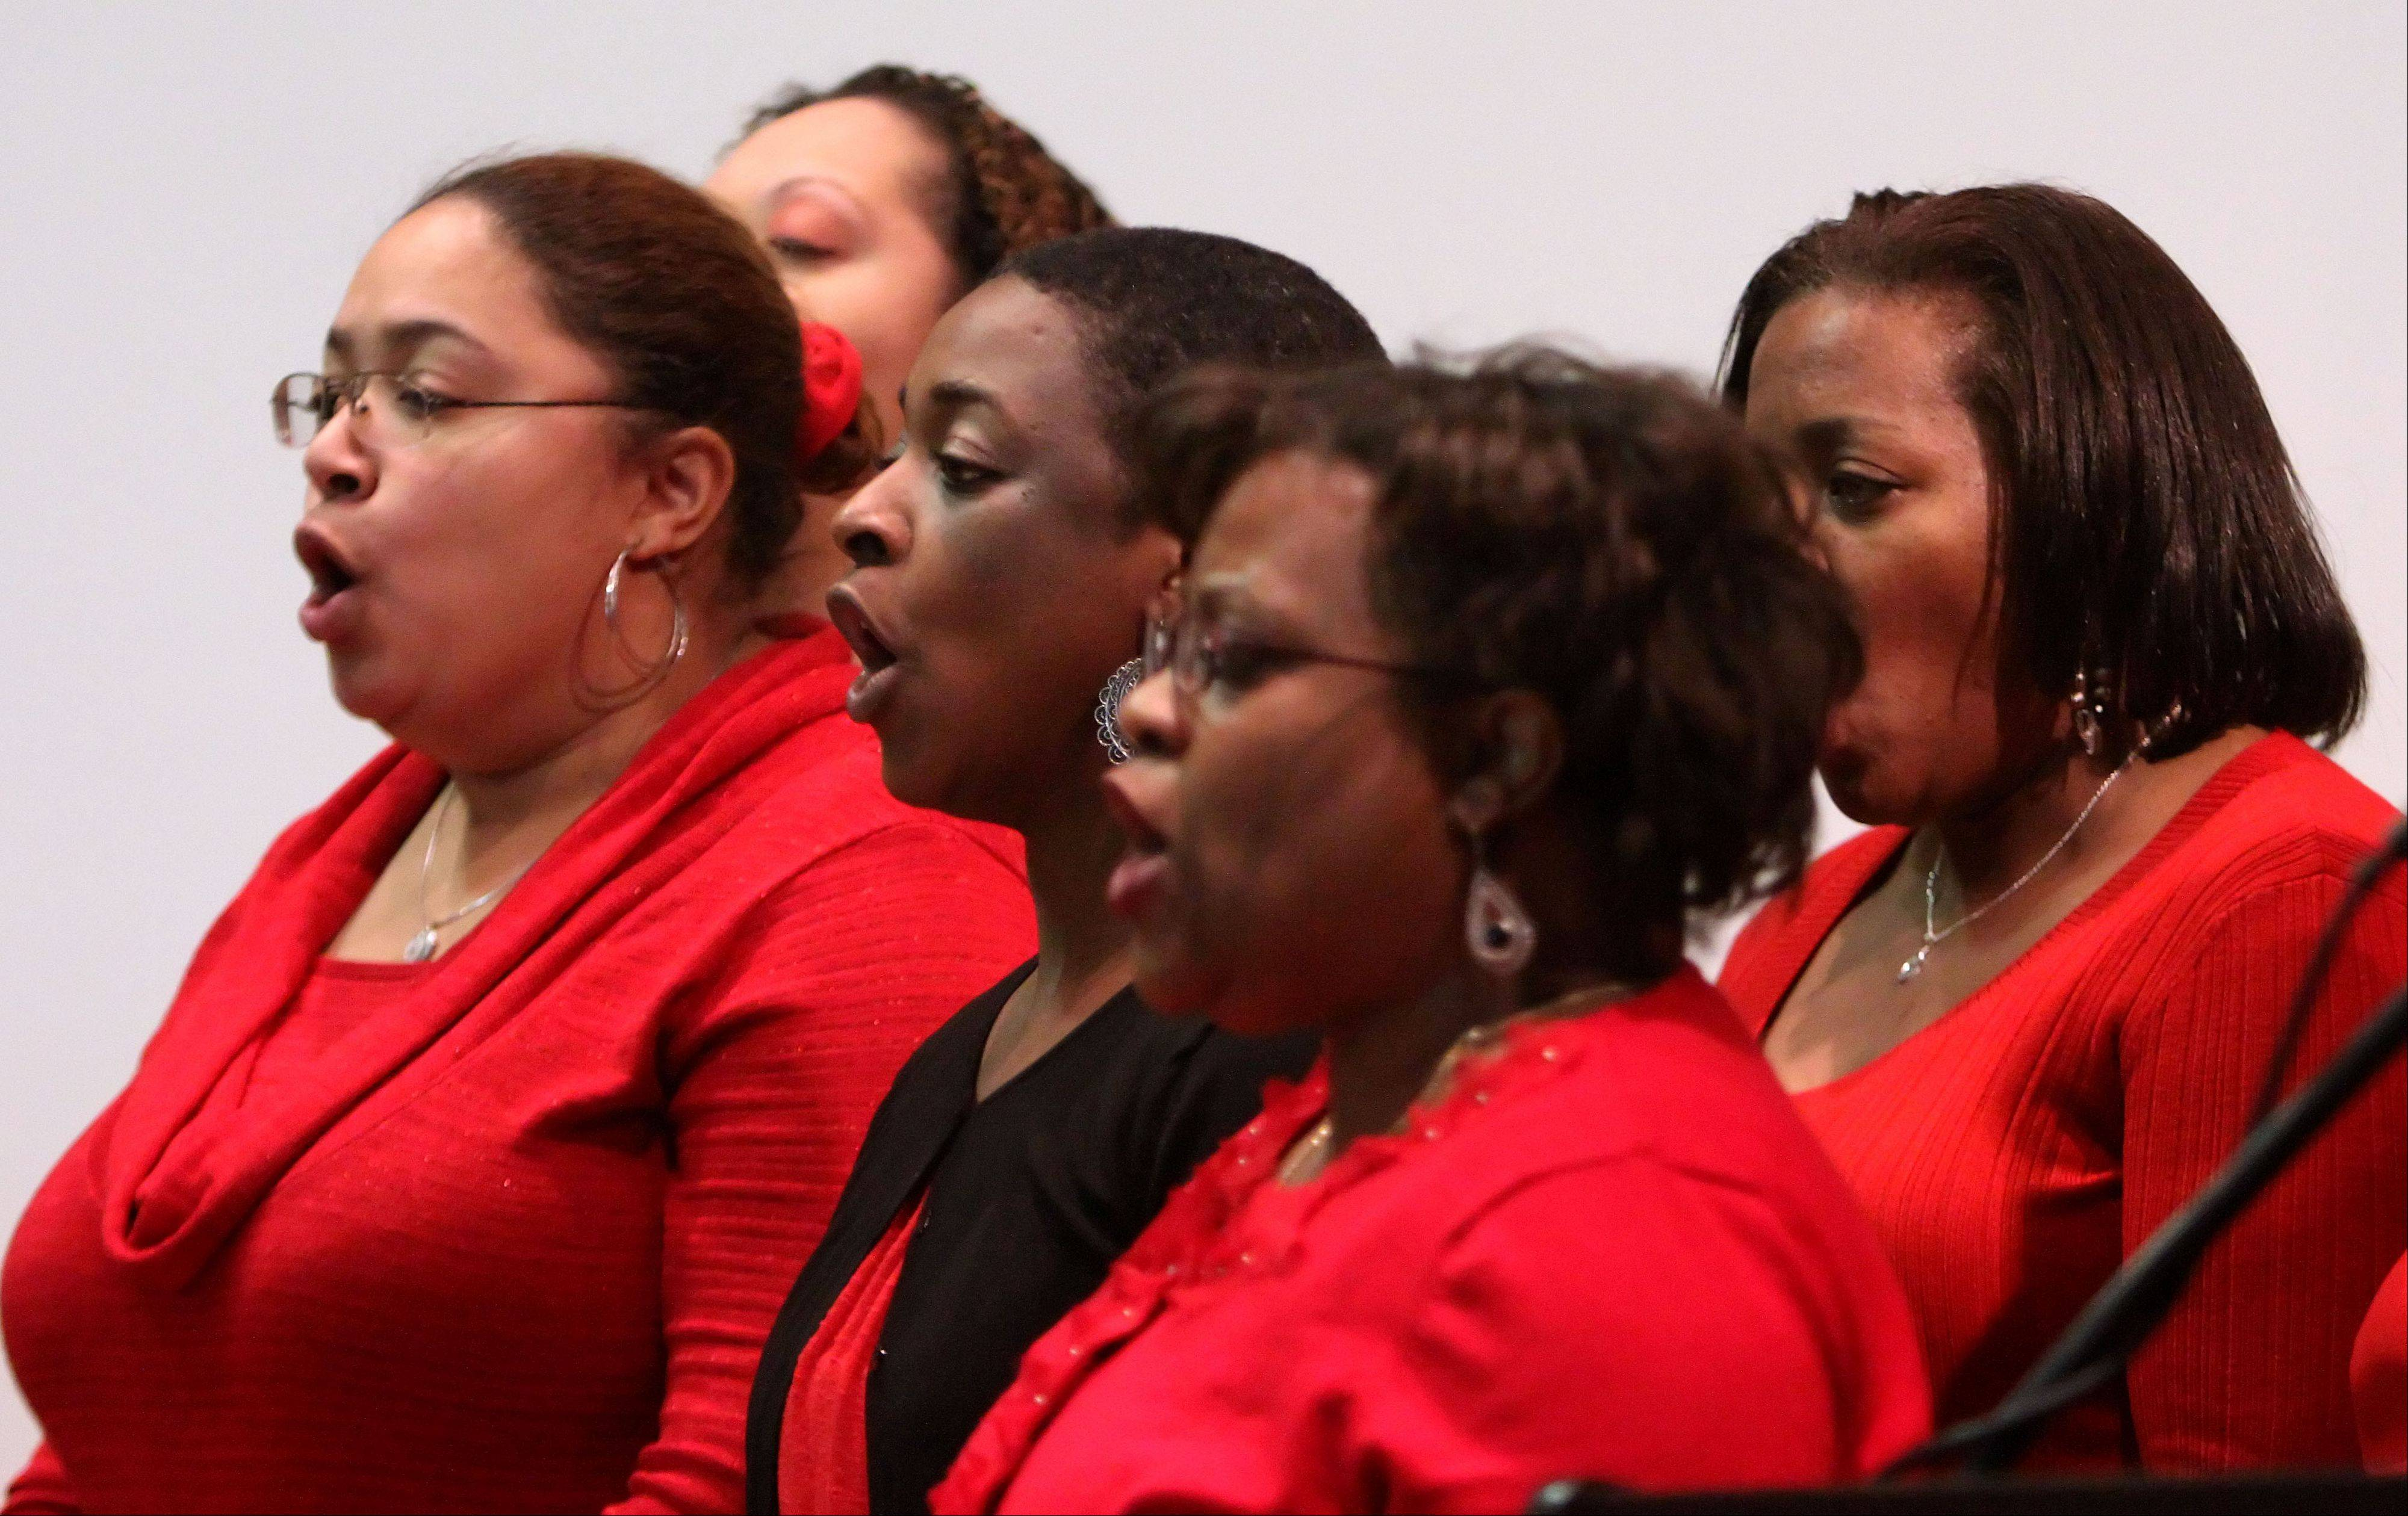 Members of Glenn Johnson & The Voices of Inner Peace perform during Lake Forest College's annual Martin Luther King Jr. program at Lily Reid Holt Memorial Chapel Monday.